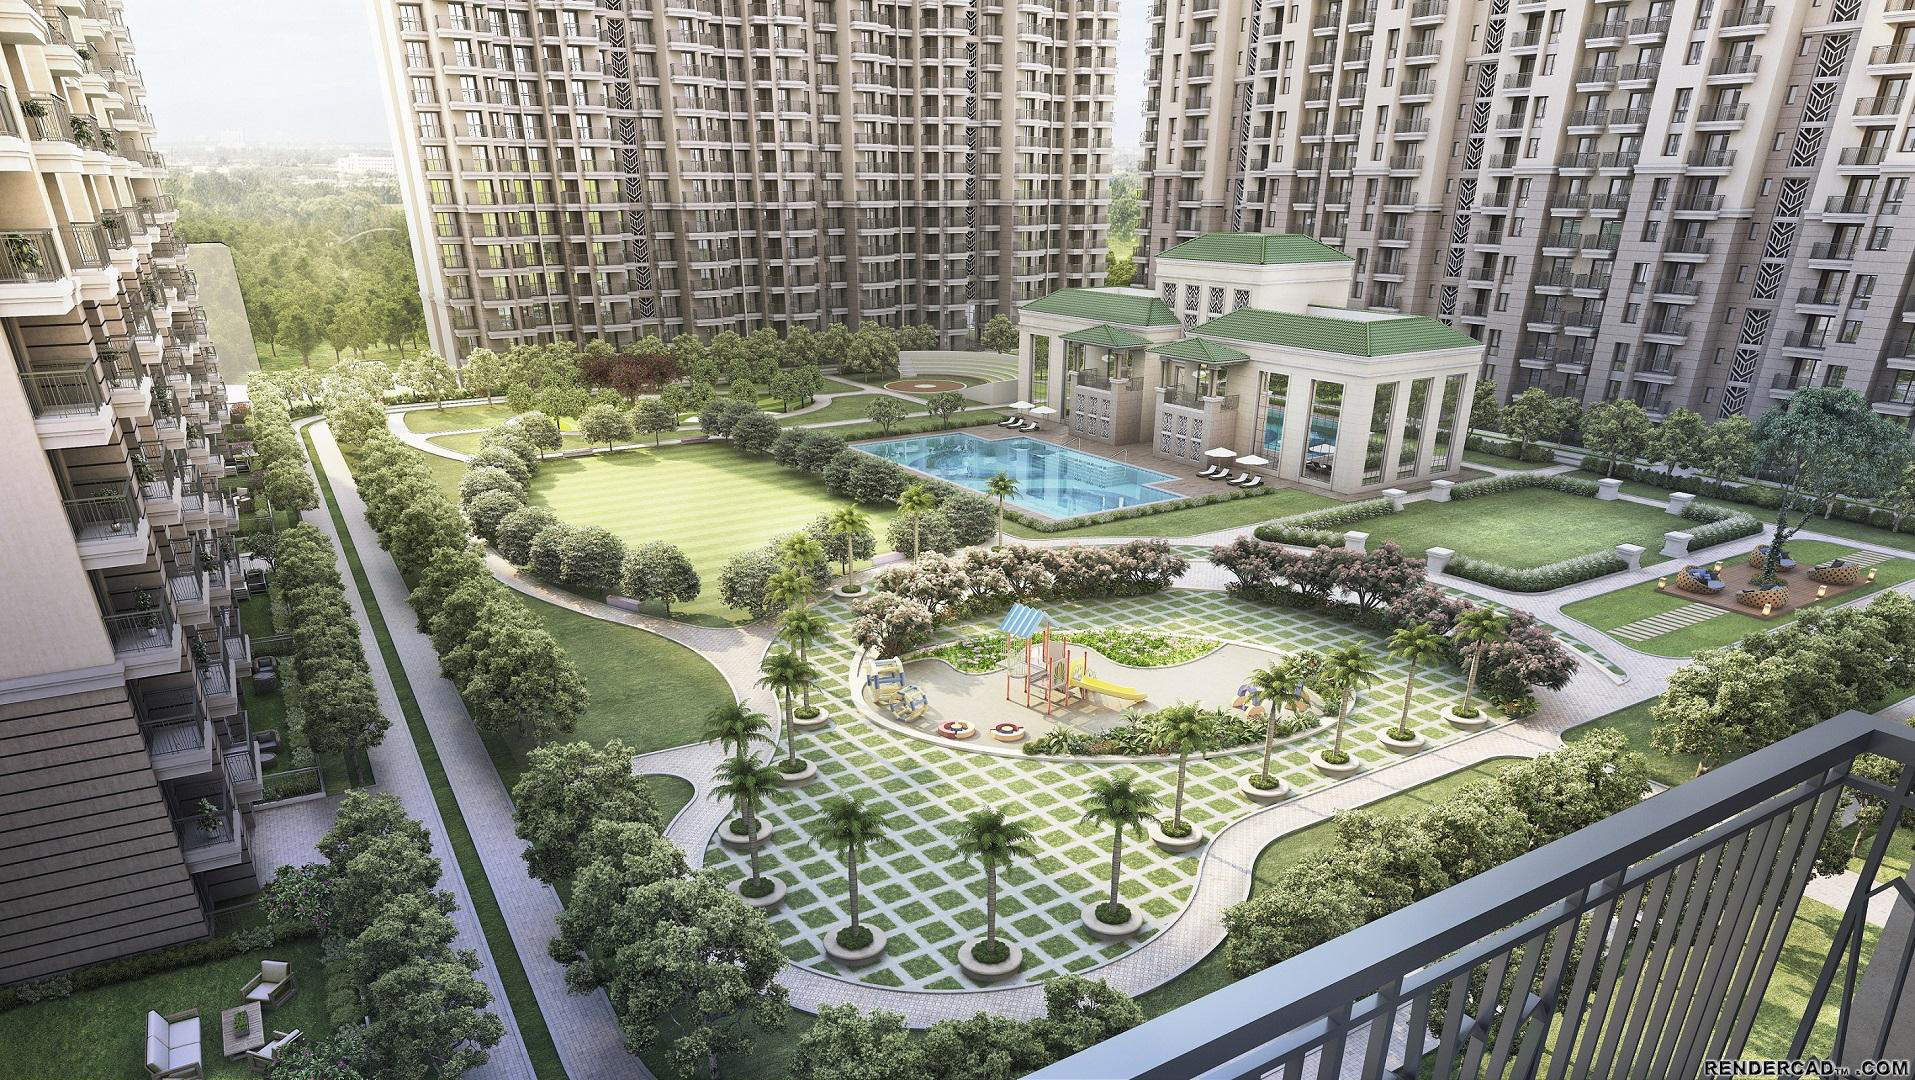 /3 BHK Flats in Greater Noida West